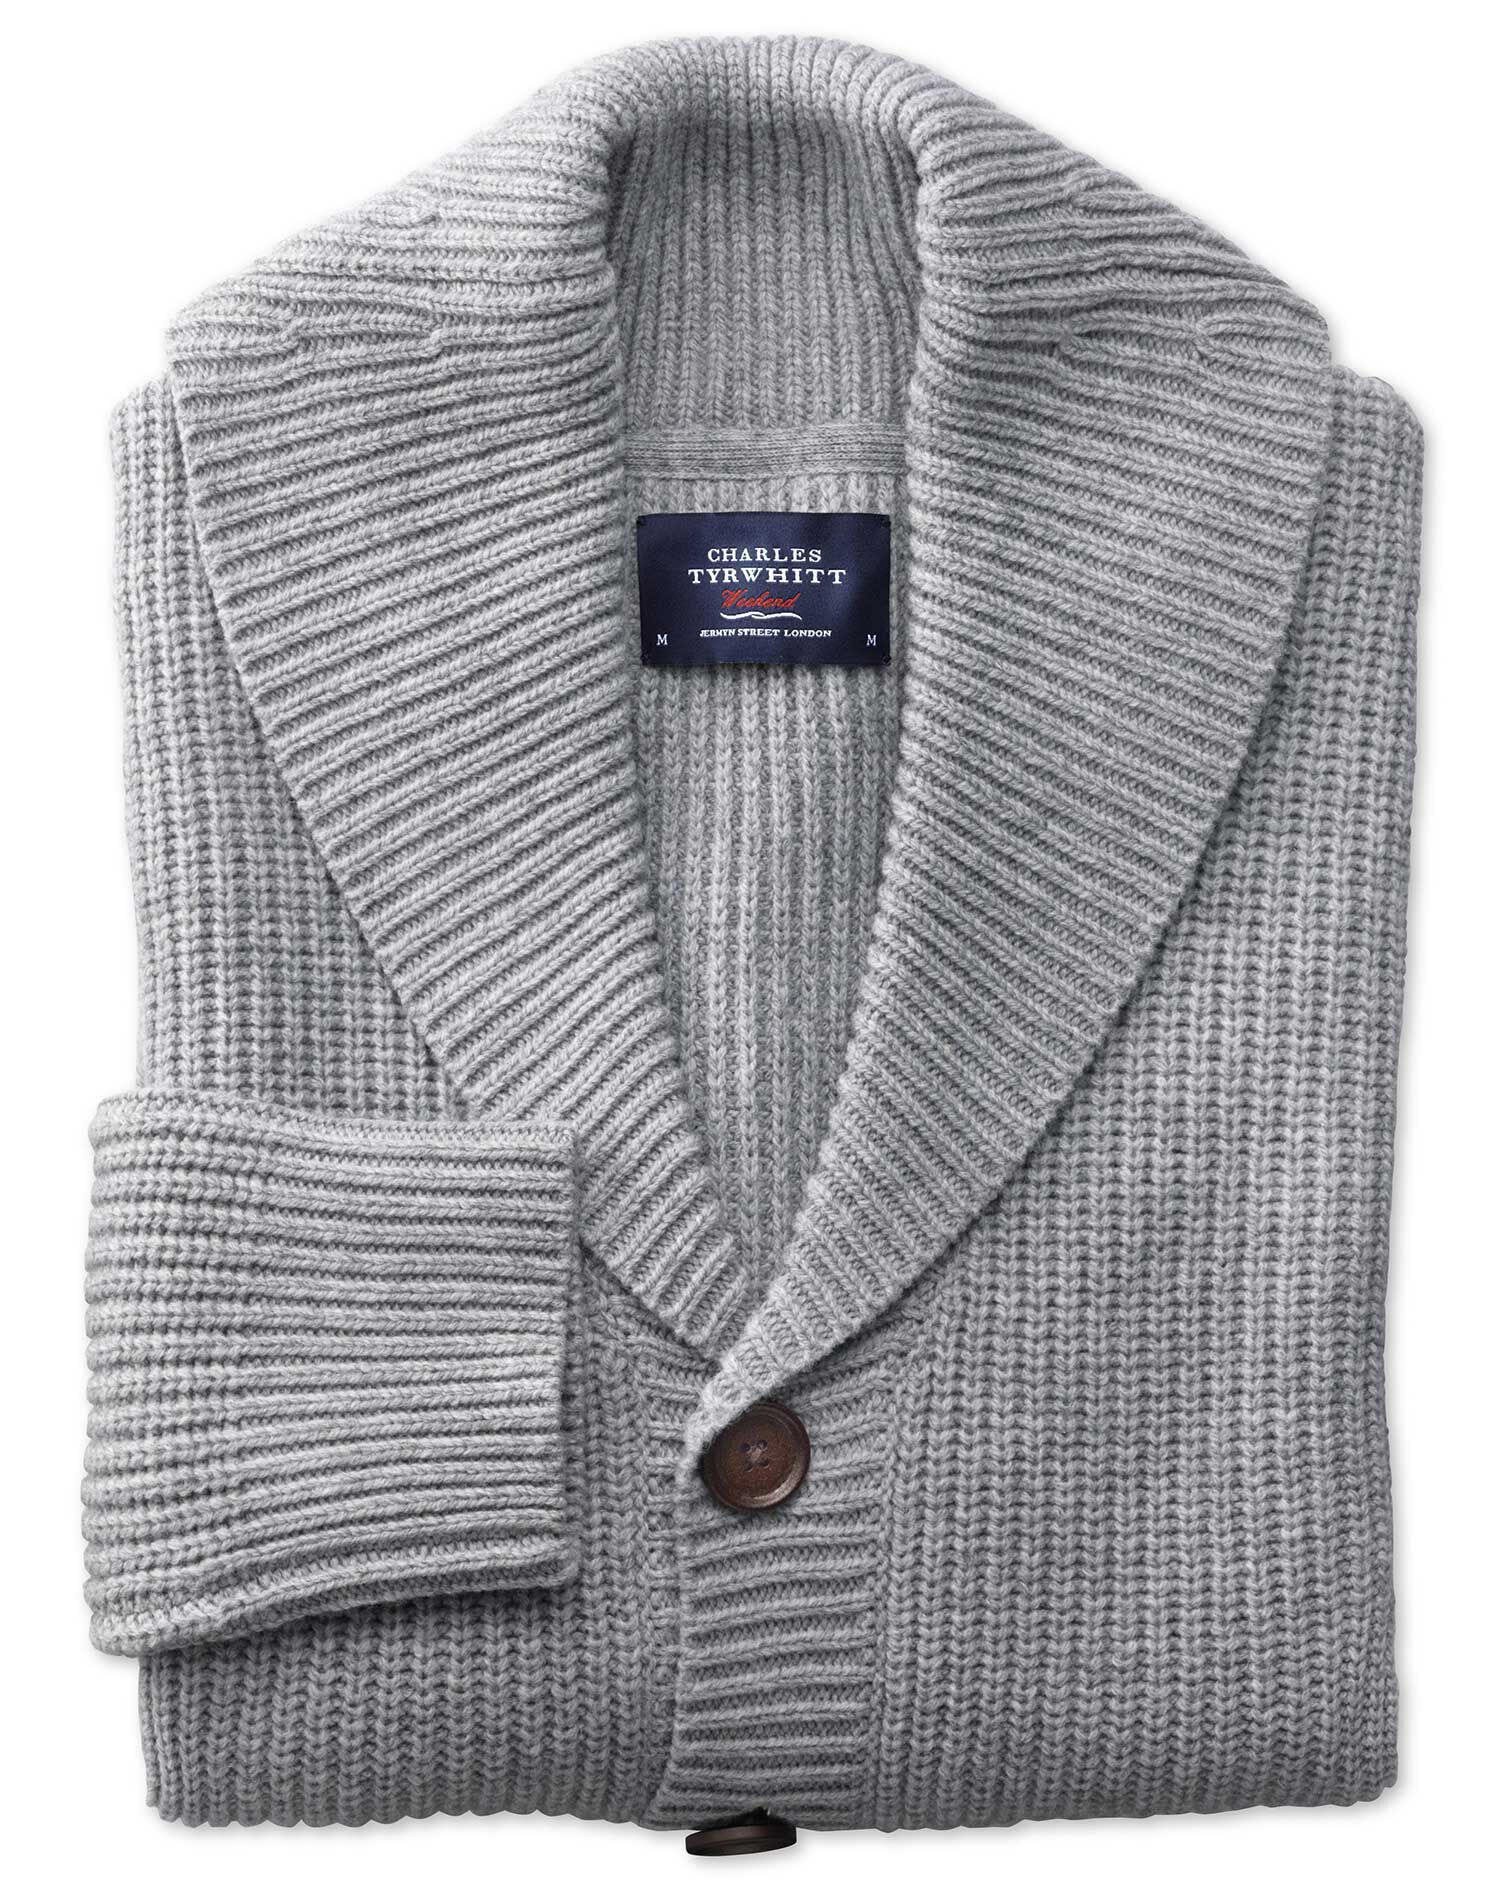 Light Grey Rib Shawl Collar Wool Cardigan Size Small by Charles Tyrwhitt